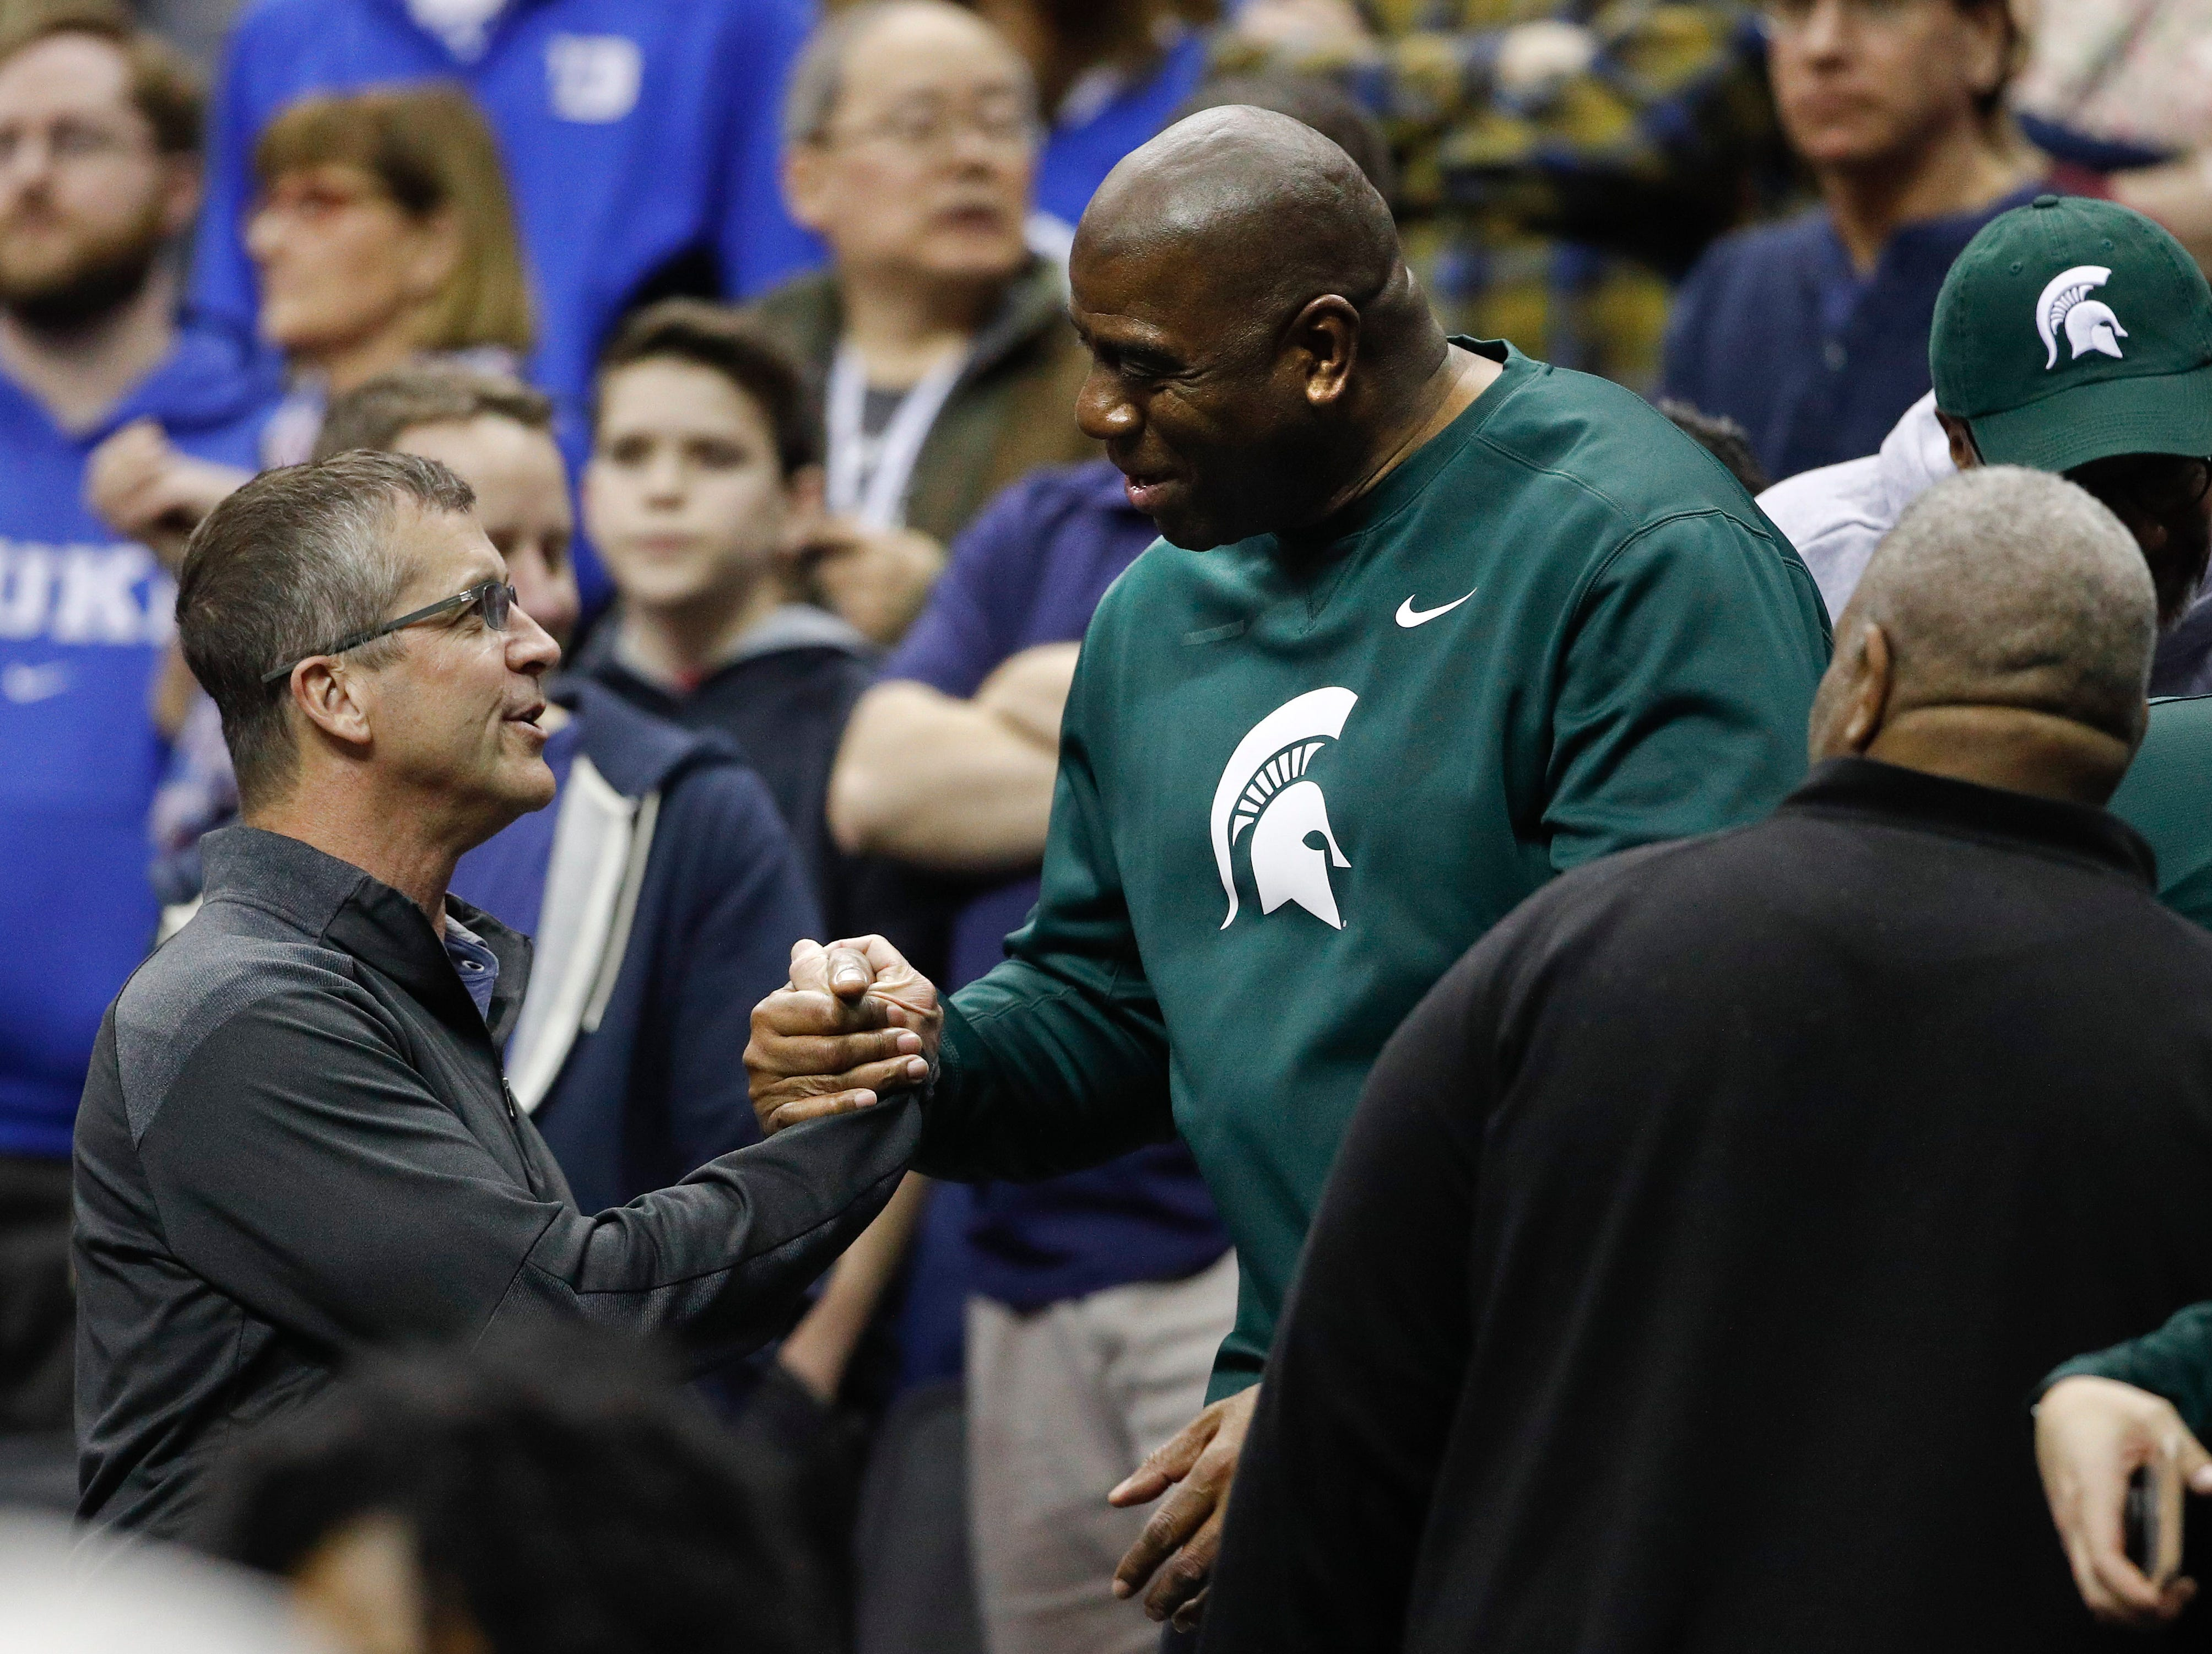 Los Angeles Lakers president and Michigan State alumni Magic Johnson, right, greets Baltimore Ravens head coach John Harbaugh, left, before the start of a NCAA men's East Regional final college basketball game between Michigan State and Duke in Washington, Sunday, March 31, 2019.